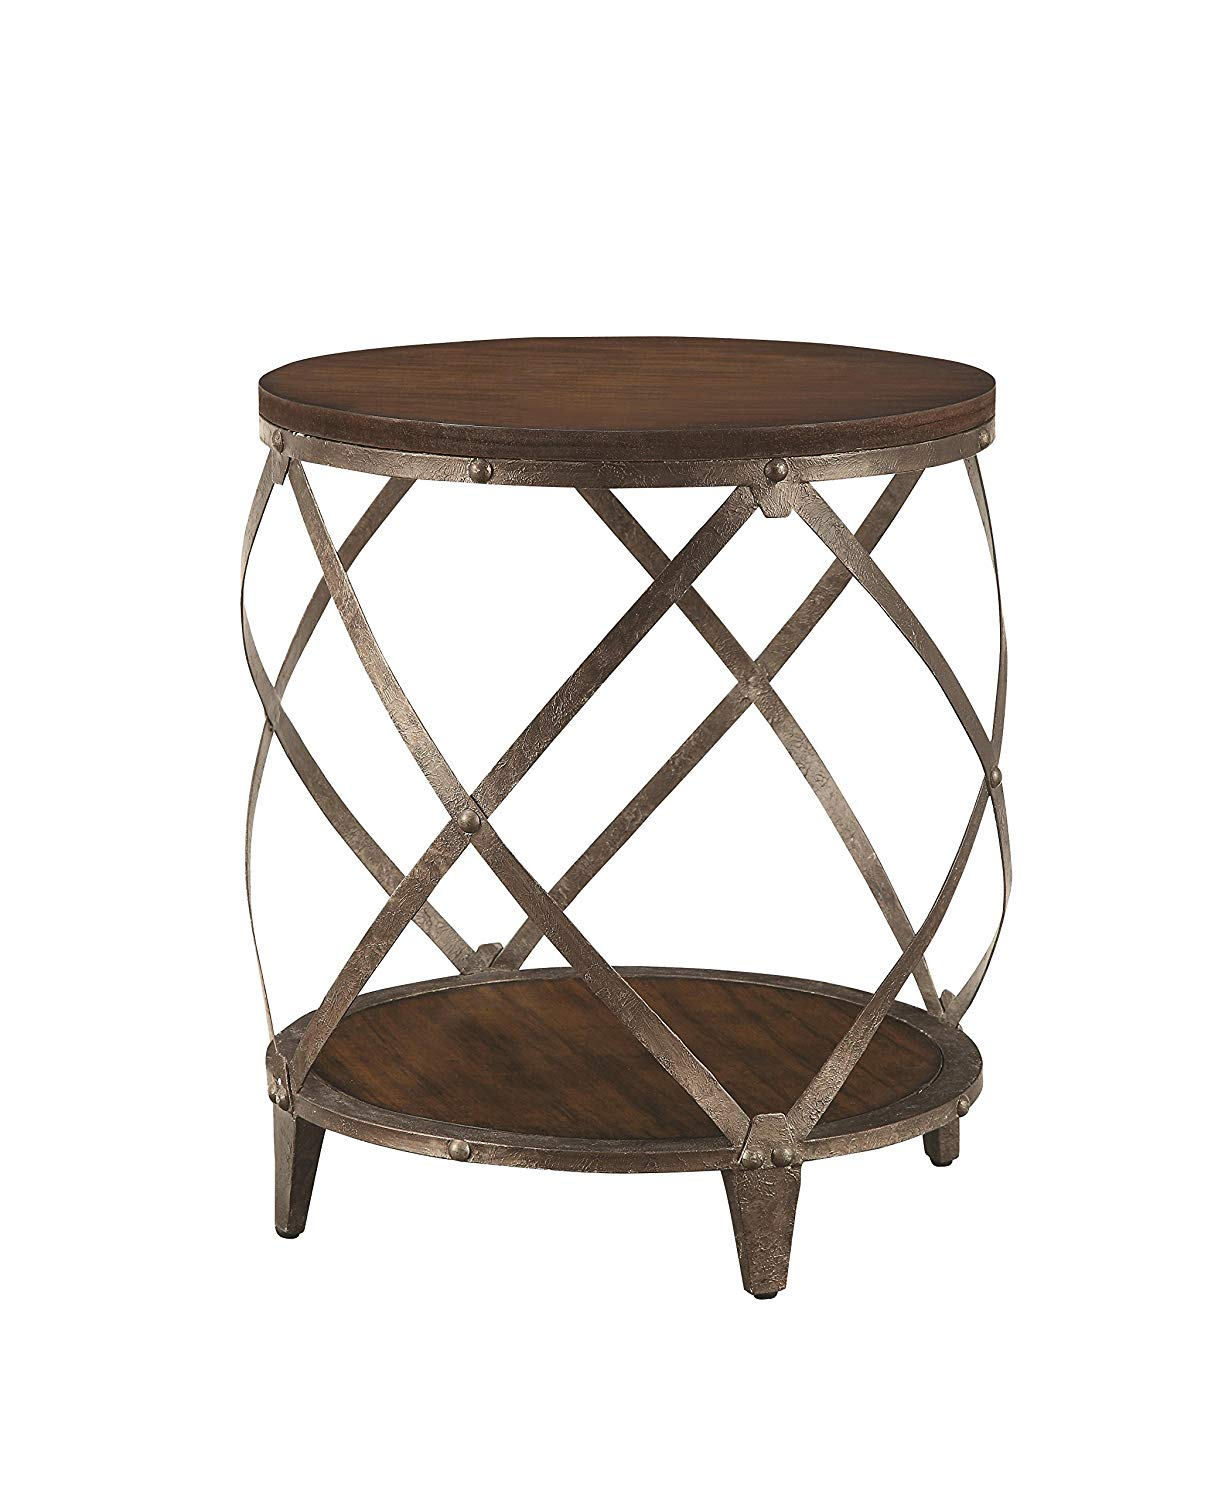 metal accent table with drum shape brown kitchen dining threshold wood silver glass coffee set small chair ott storage diy concrete jcpenney tables world market lamps unfinished